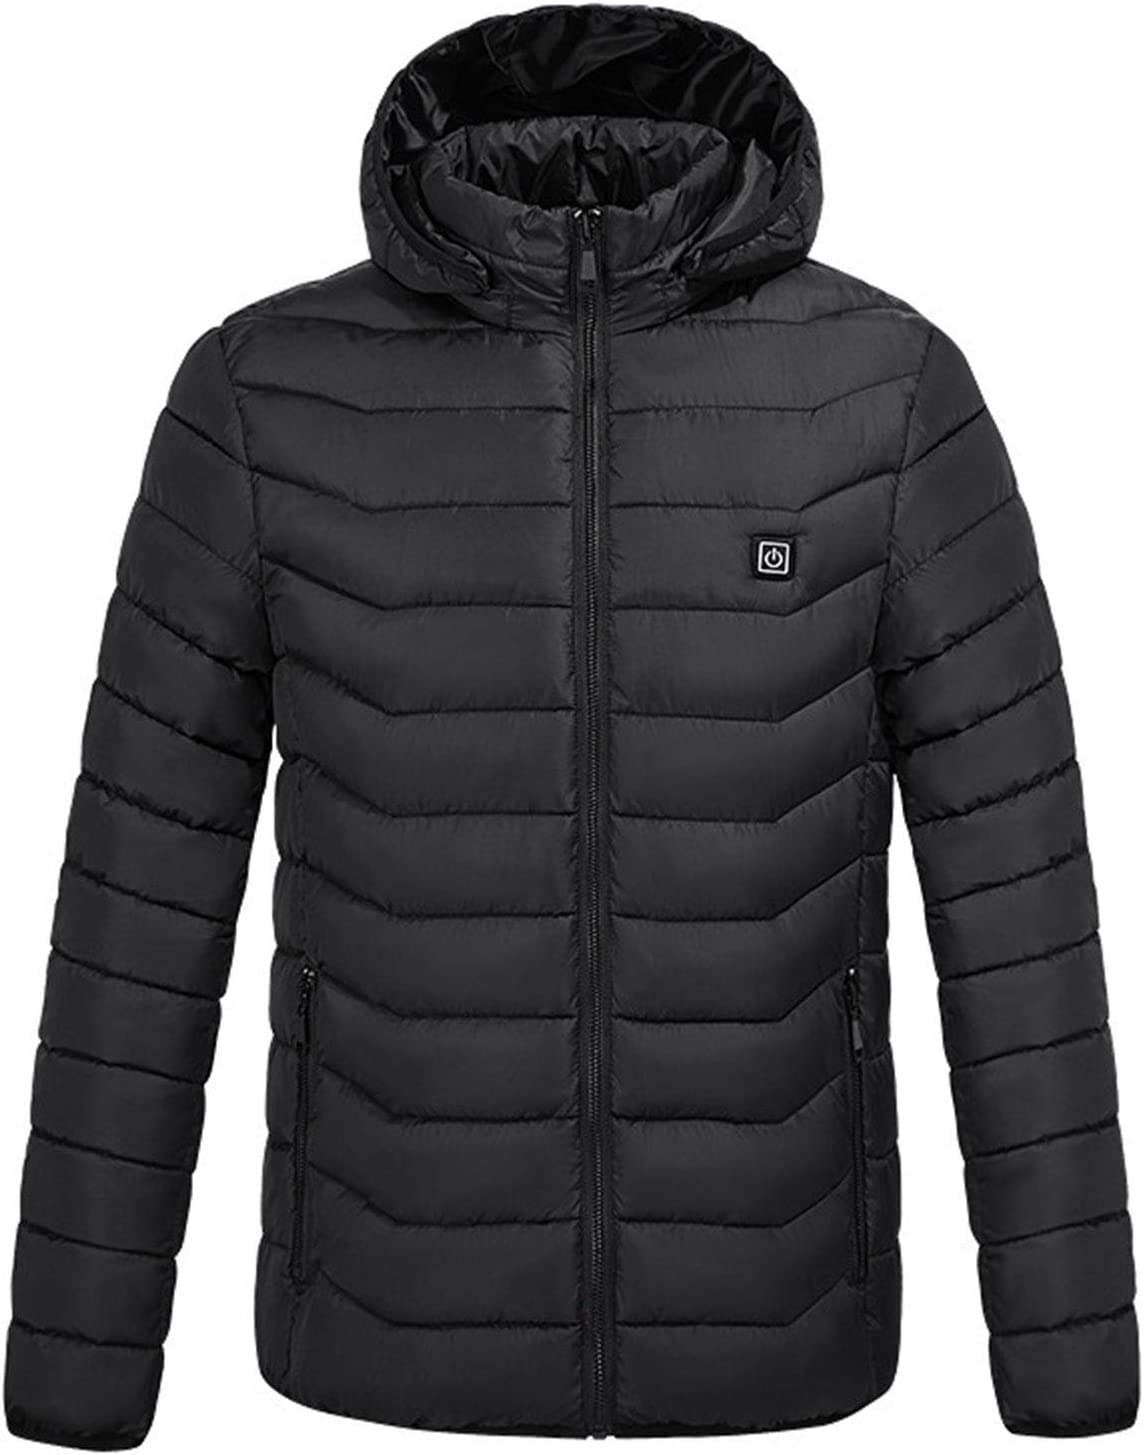 DALLL Heated Jacket Men's Electric Heated Jacket for Outdoor Work and Daily wear,Black,S